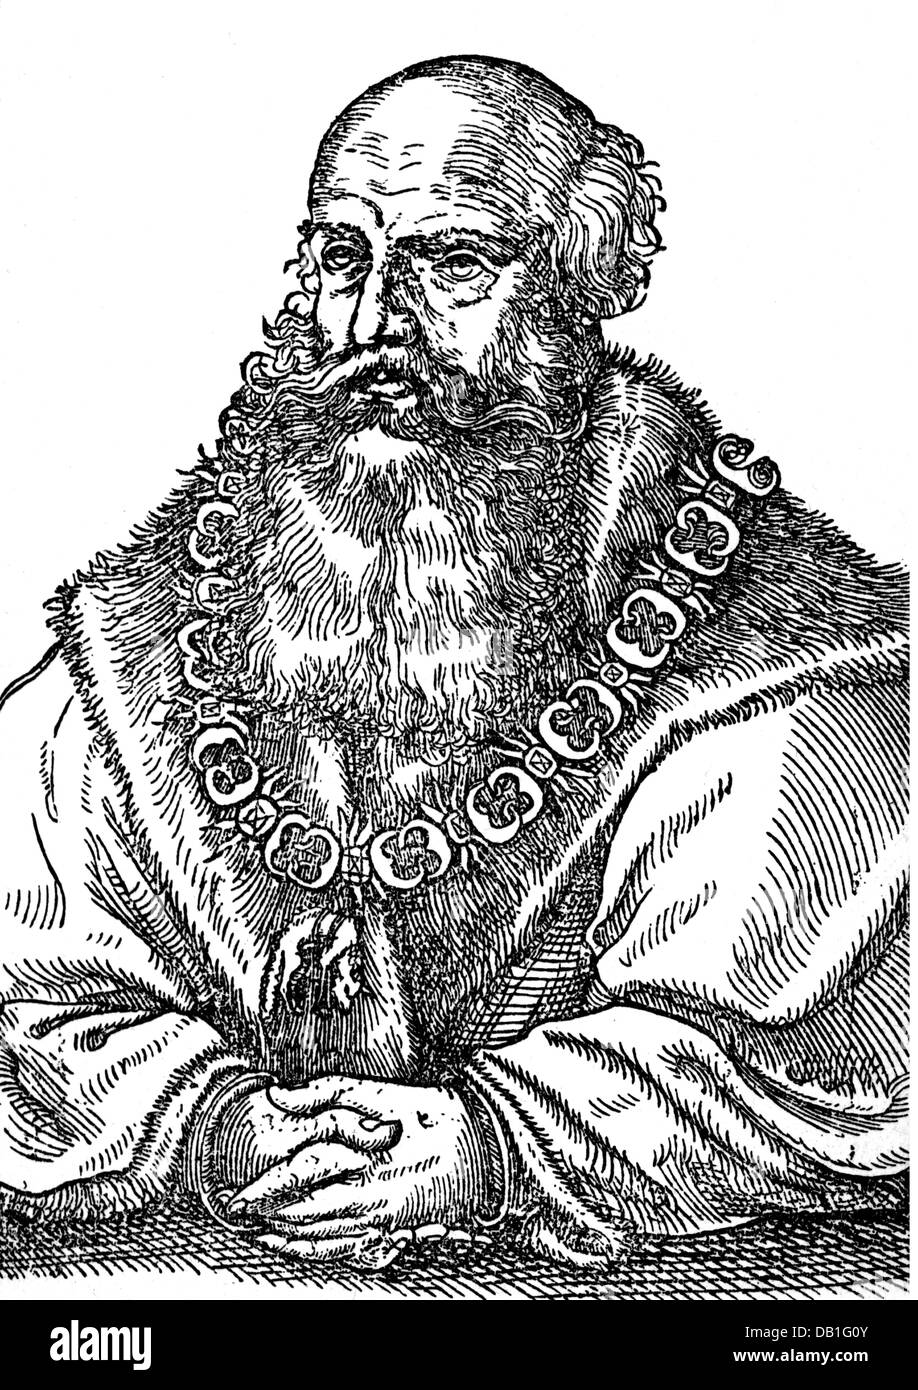 George the Bearded, 27.8.1471 - 17.4.1539, Duke of Saxony 12.9.1500 - 17.4.1539, half length, after woodcut by Cranach, - Stock Image